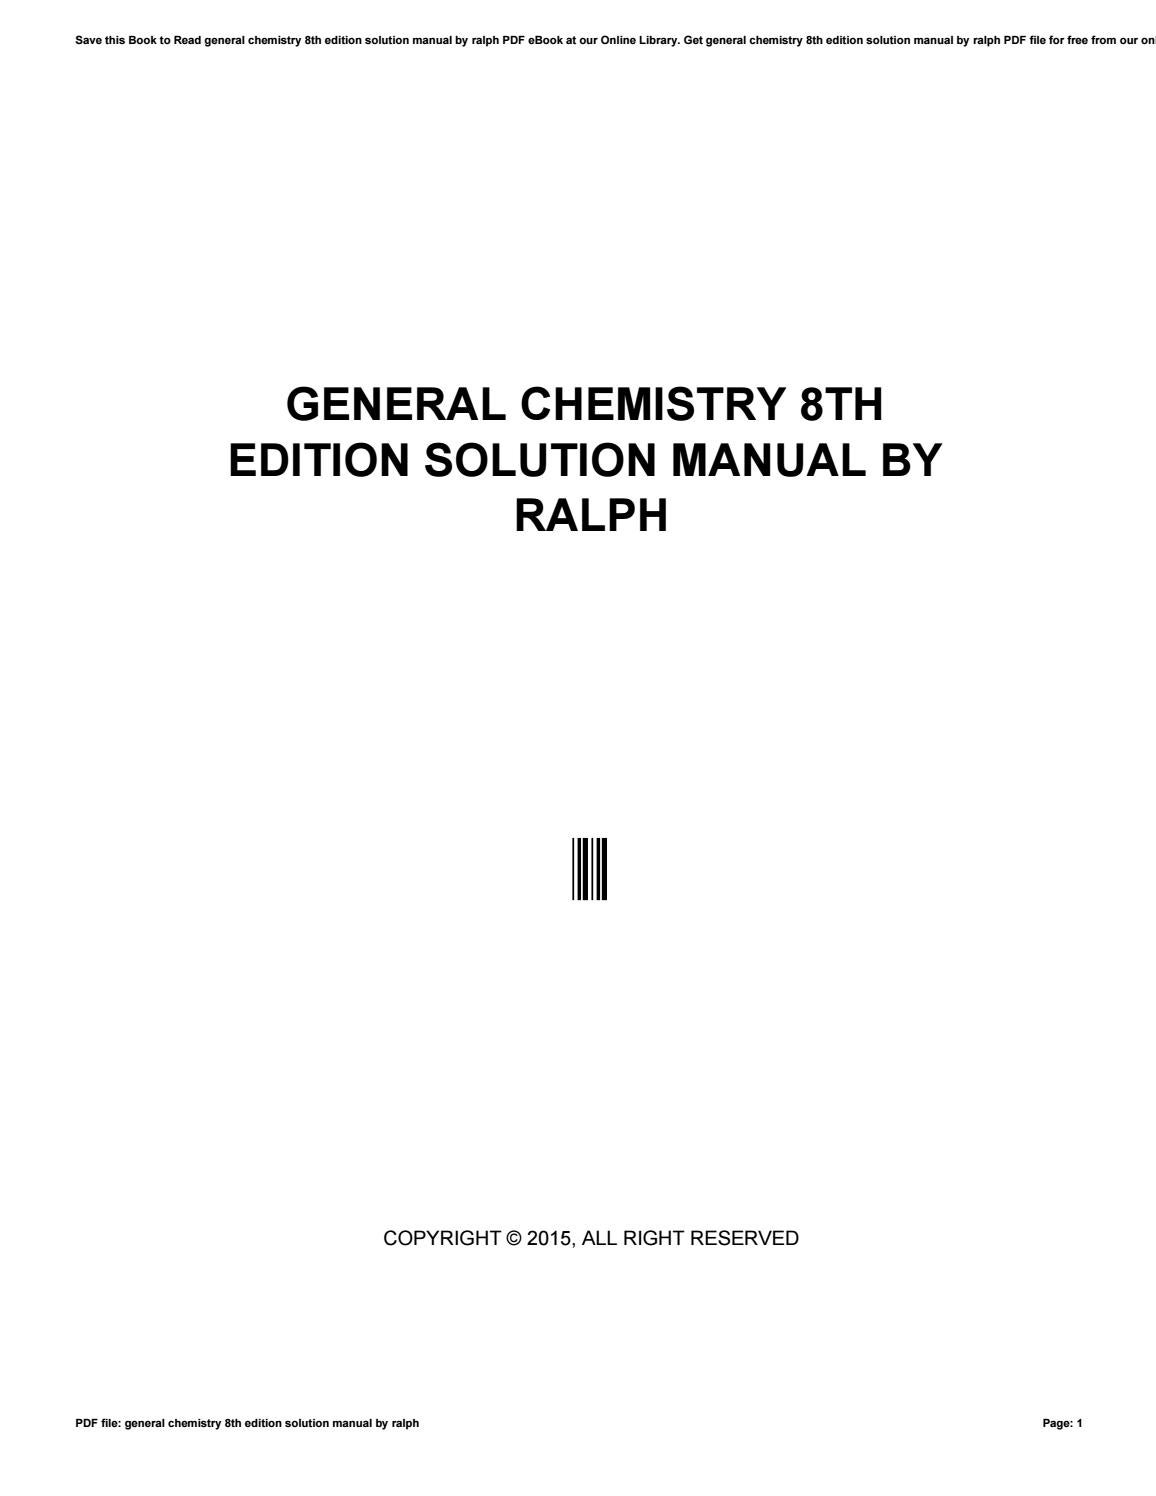 General chemistry solution manual pdf ebook array general chemistry 8th edition solution manual by ralph by rh issuu com fandeluxe